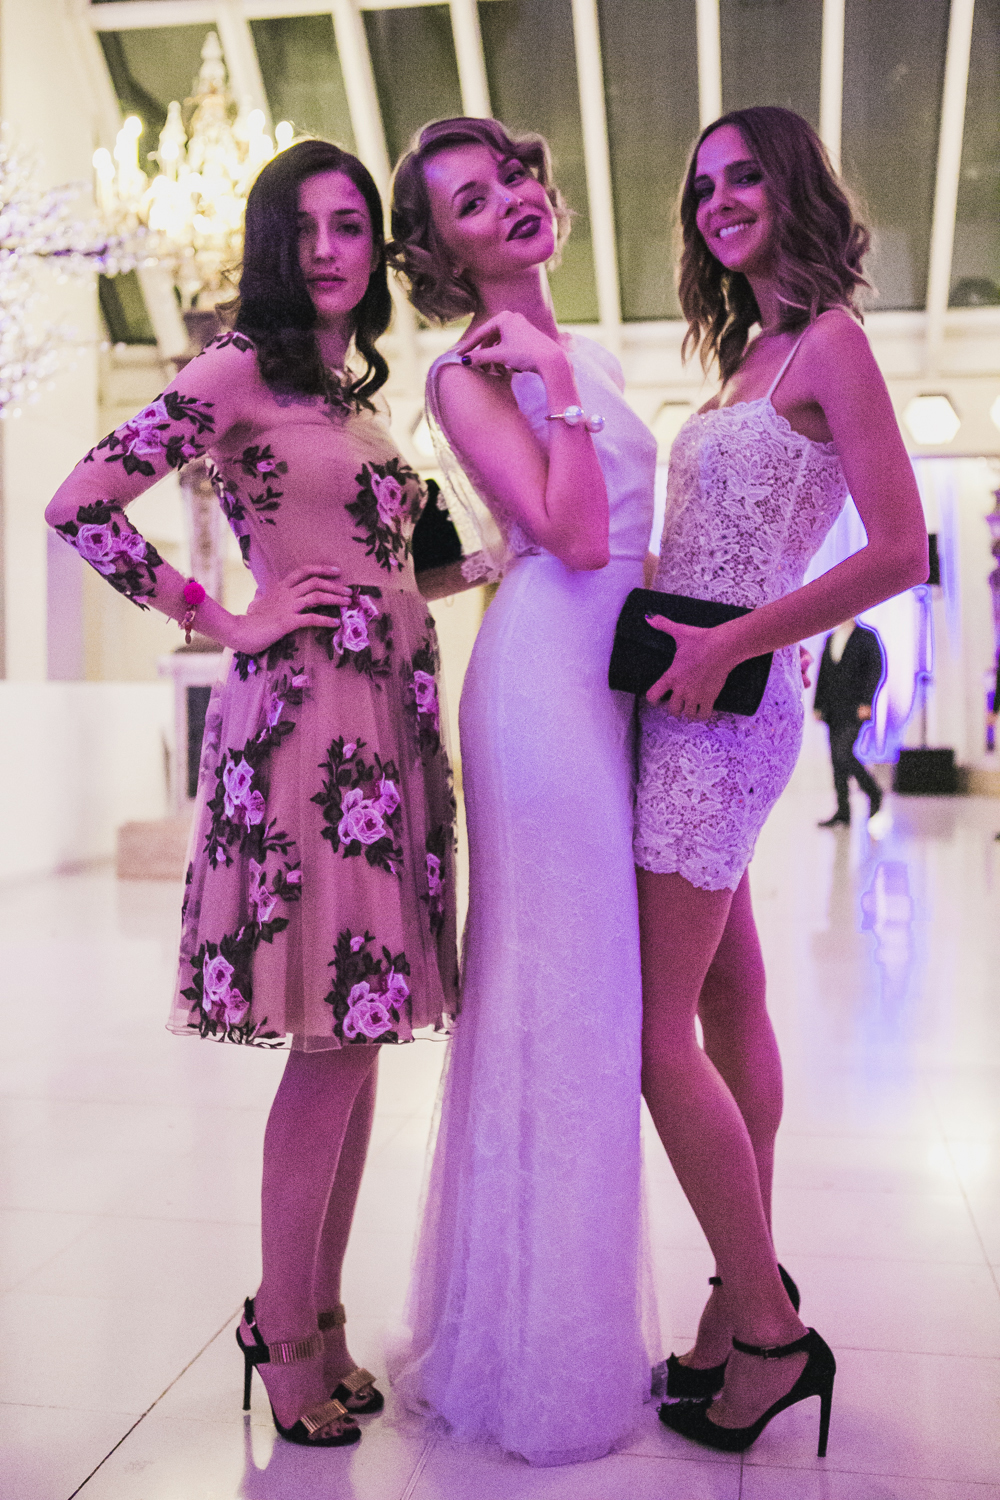 darya kamalova fashion blogger from thecablook in trip in Barcelona Spain with Pronovias 2015 wedding dresses collection catwalk wearing uel camilo white gown bottega veneta knot clutch and black lips-2926